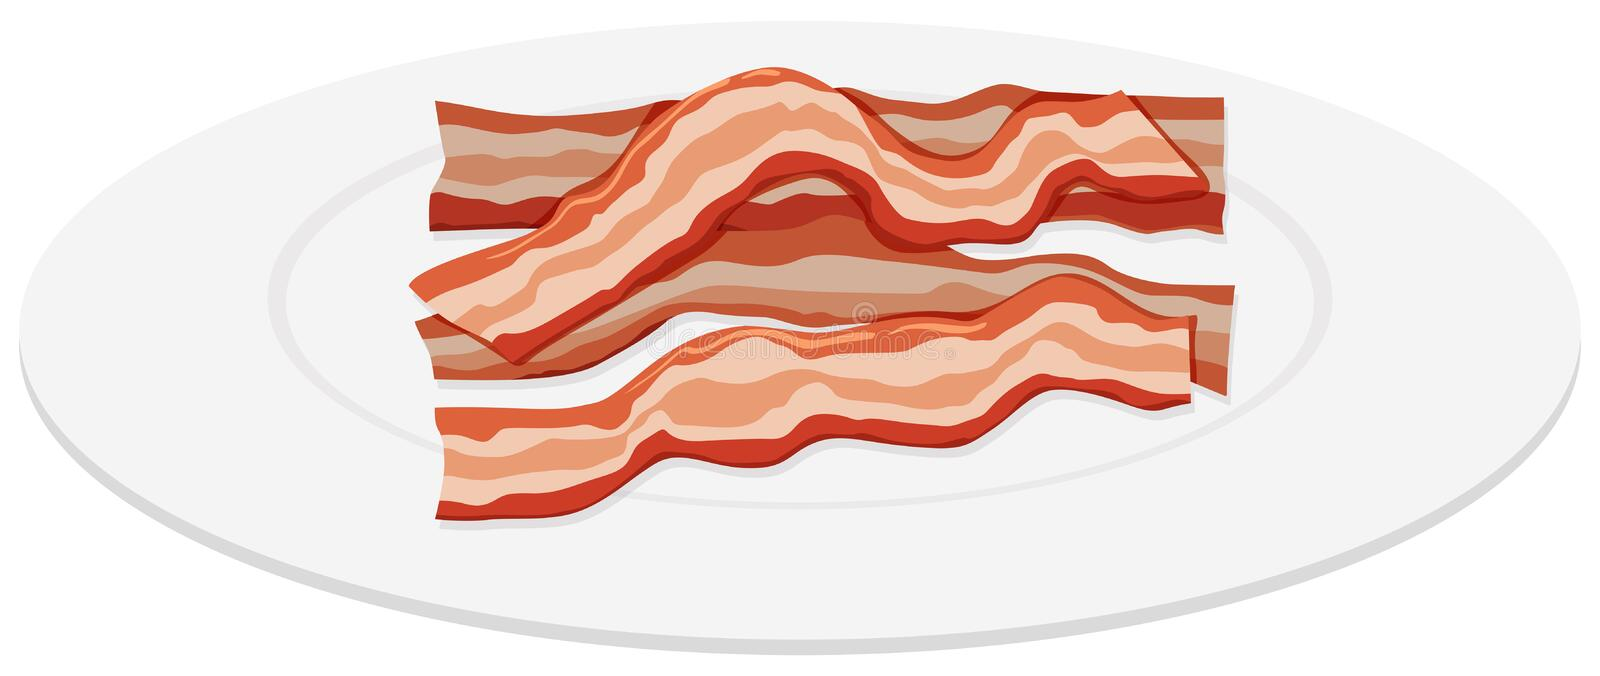 Bacon slices on plate stock illustration